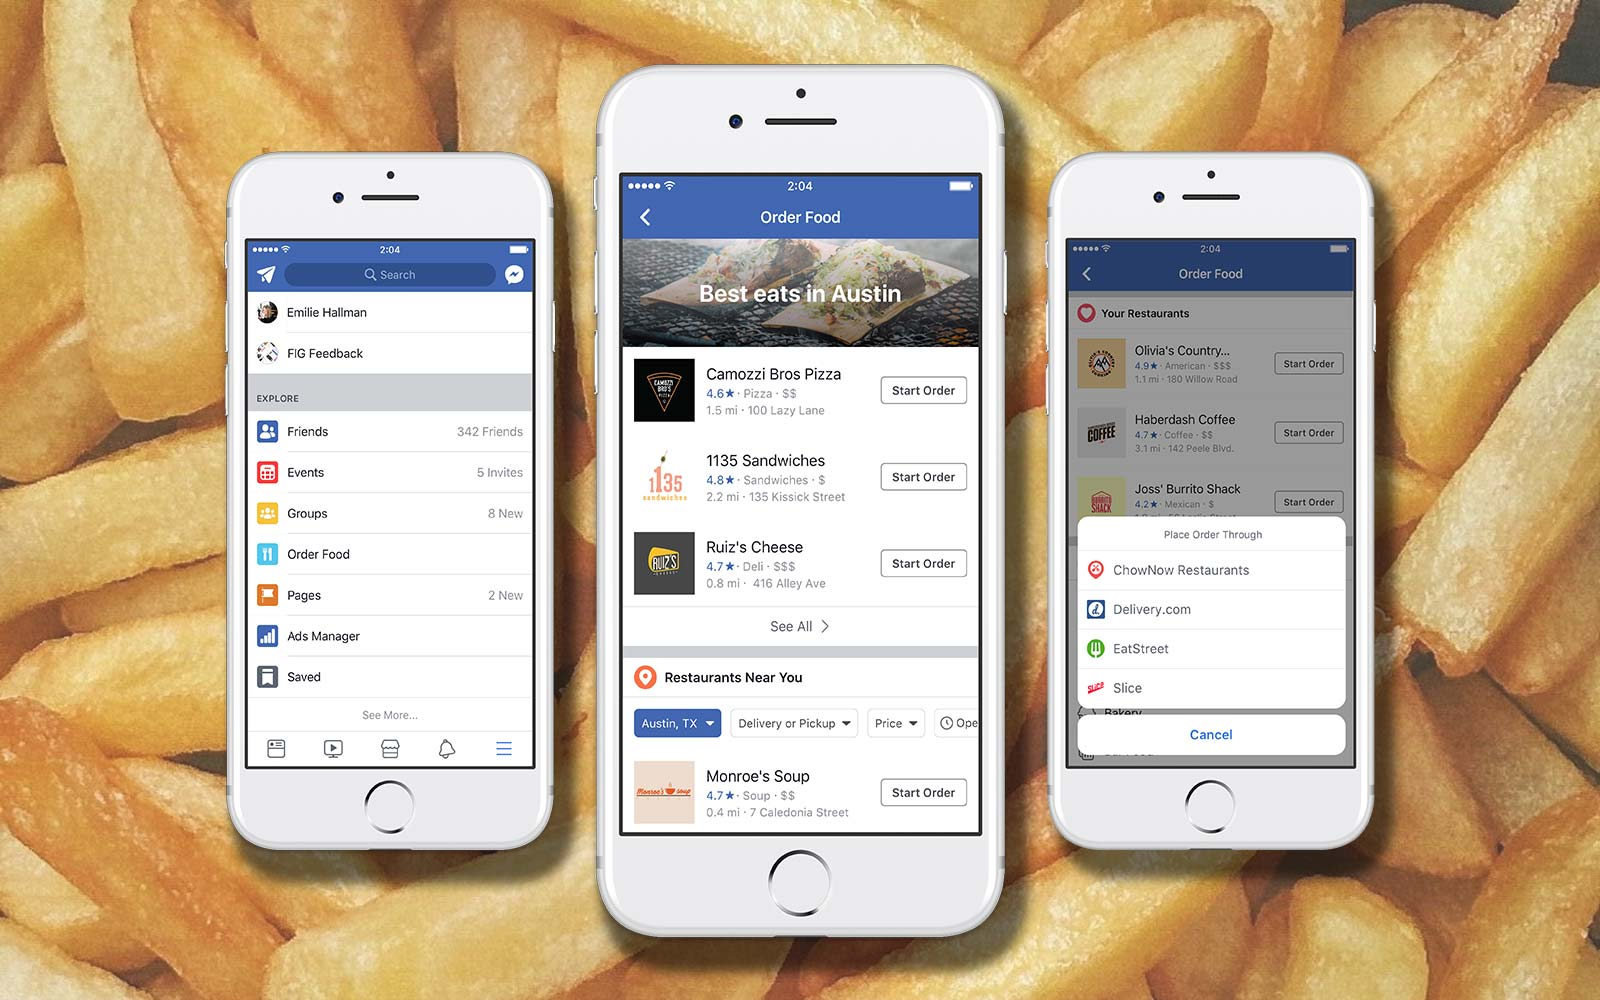 USA customers can now order food through Facebook